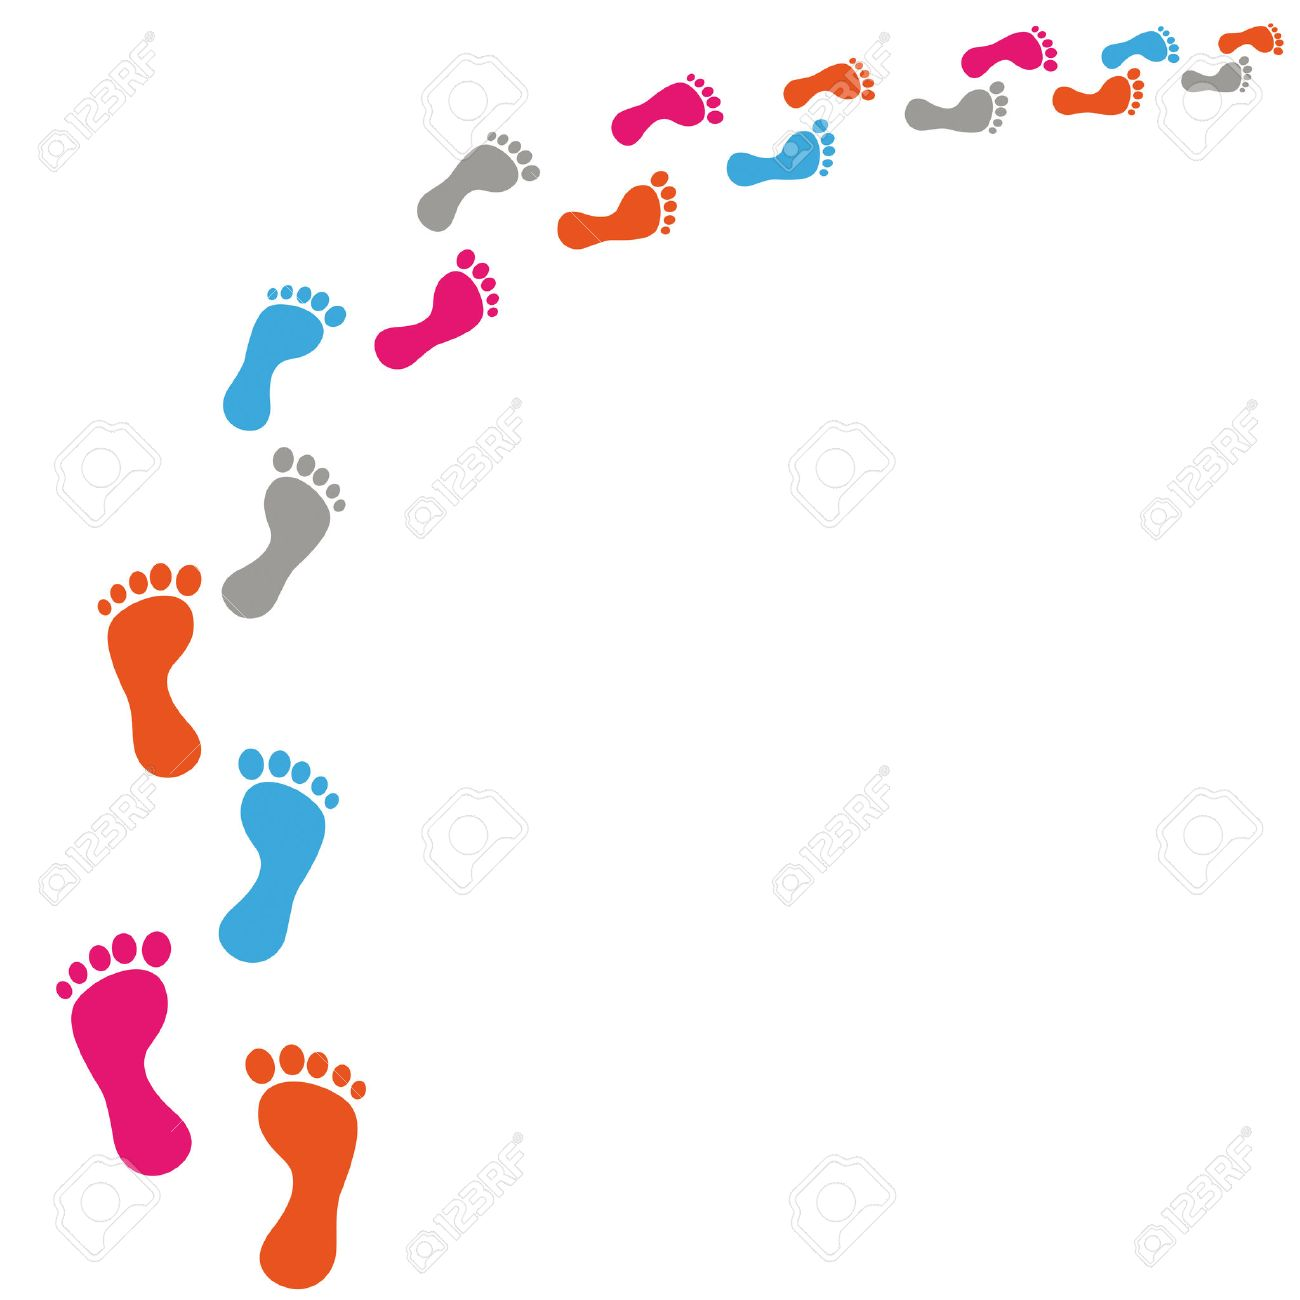 Colored footprints on the white background. Eps 10 vector file. - 26132418